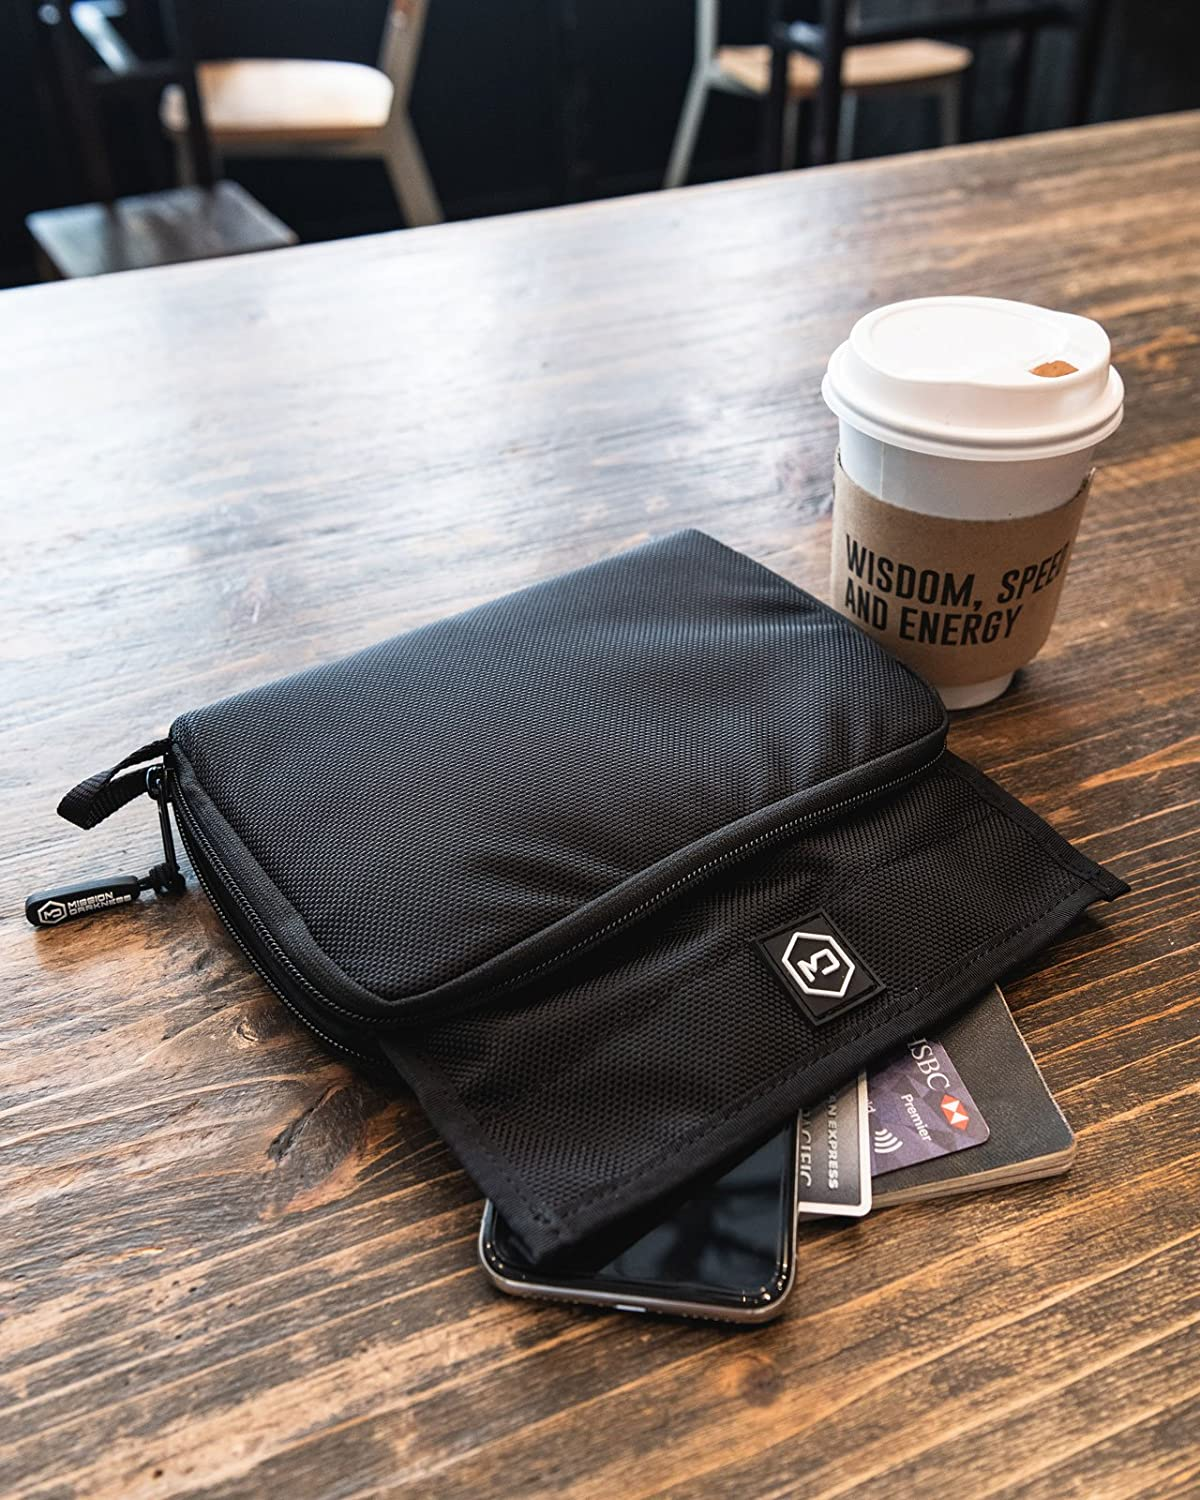 Anti-Spying Faraday cage Anti-Hacking Anti-Tracking Mission Darkness Mojave Faraday Phone Bag//Multi-Functional Travel case with Accessory Pockets and Built-in Faraday Sleeve//Signal-Blocking